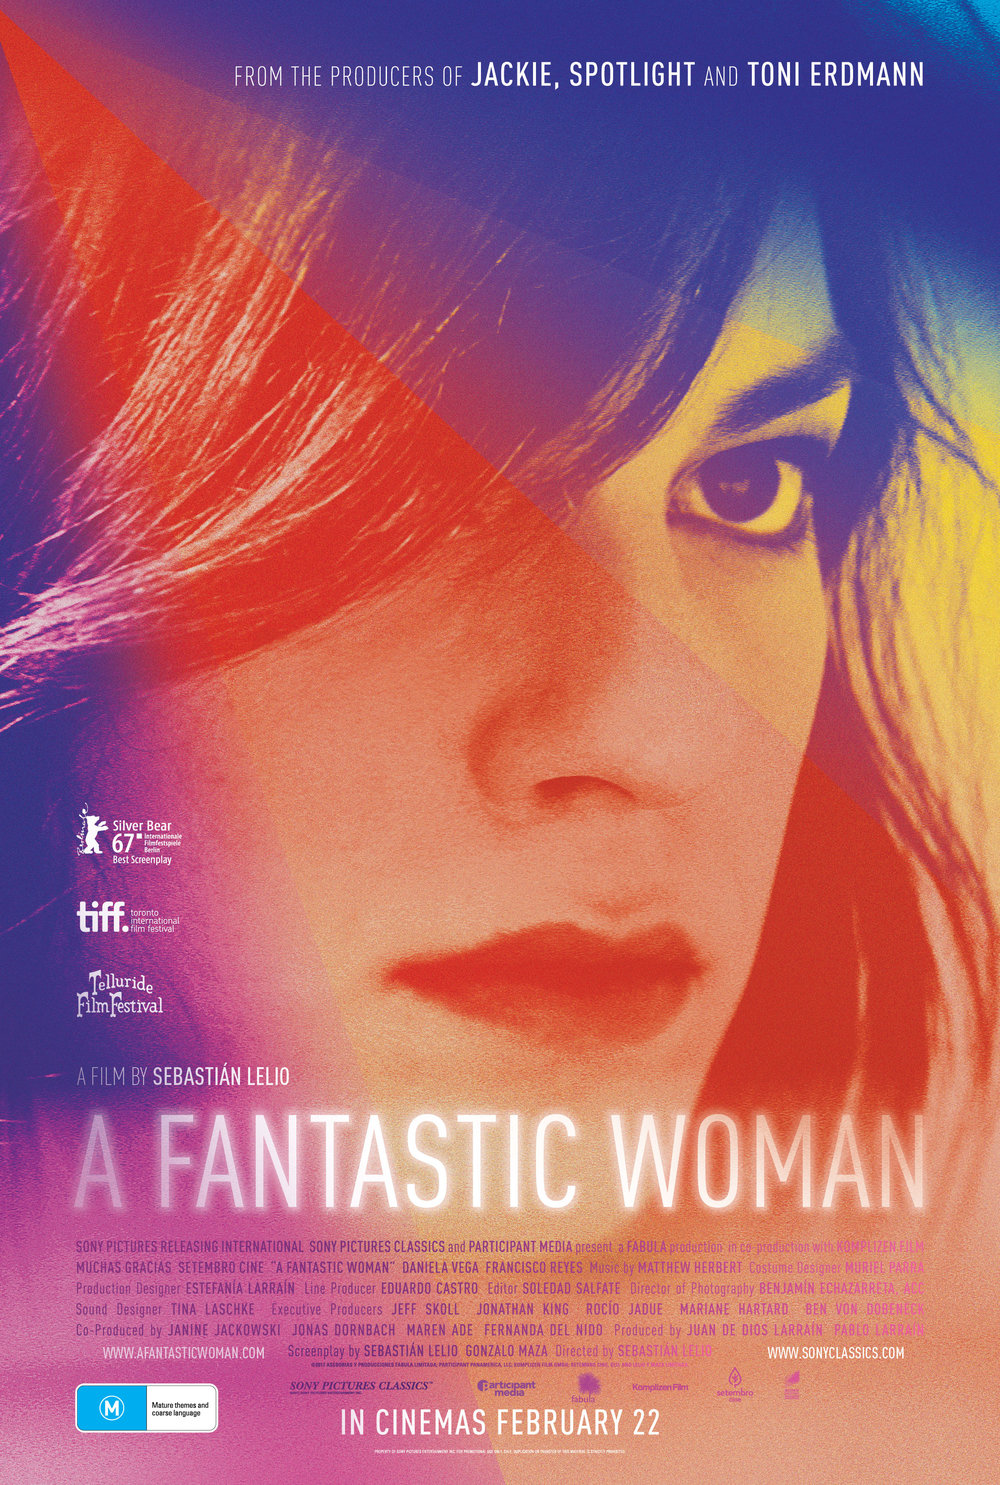 A Fantastic Woman   ( Una Mujer Fantástica ) (2017) dir. Sebastián Lelio Rated: R image: ©2017  Sony Pictures Classics